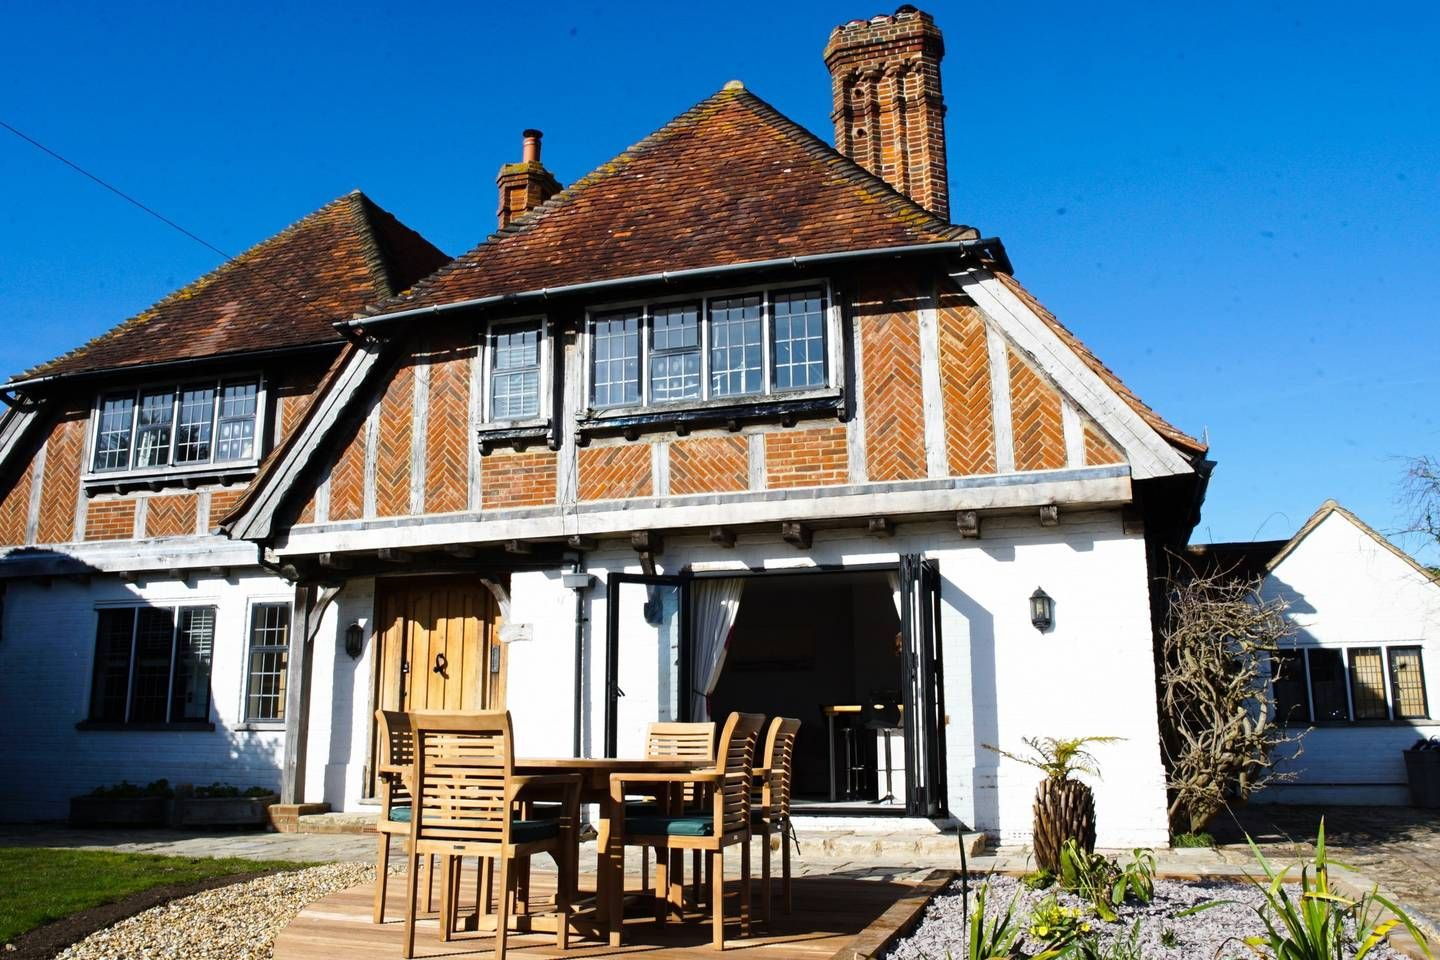 A Houses For Rent Spindles 2 Bed House Near West Wittering Beach Houses For